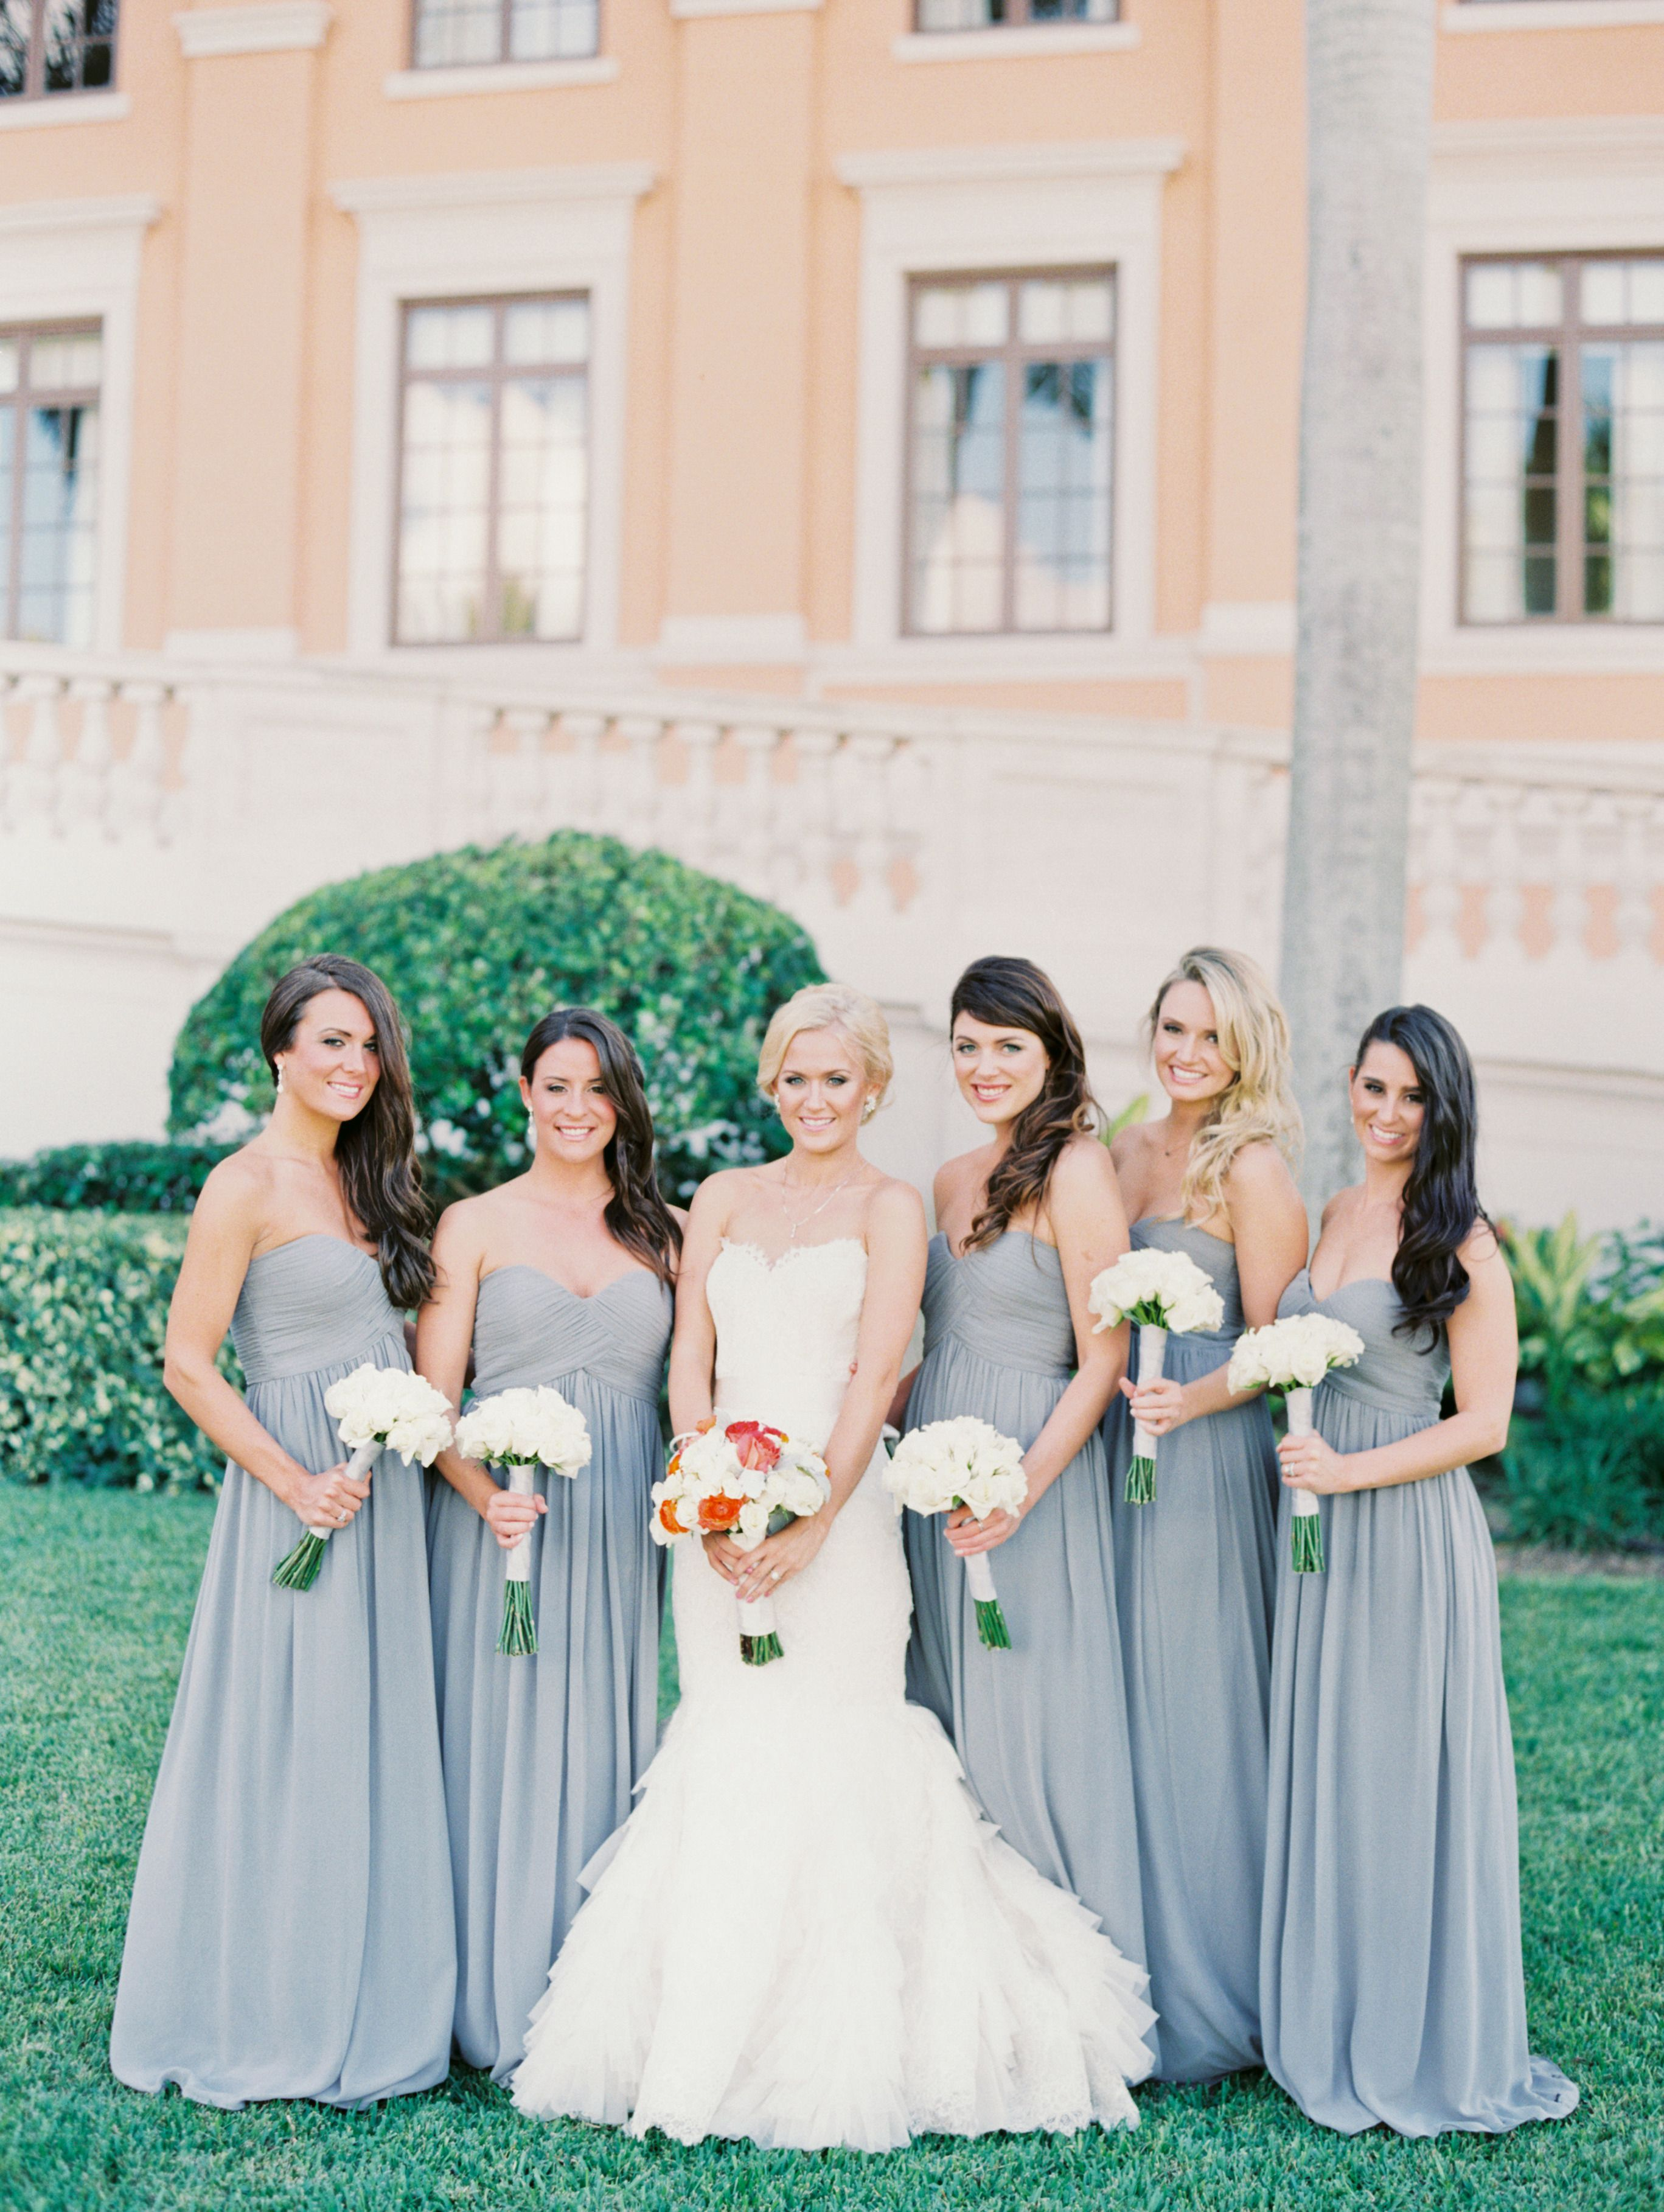 Biltmore hotel wedding by michelle march hotel wedding coral biltmore hotel wedding by michelle march ombrellifo Choice Image